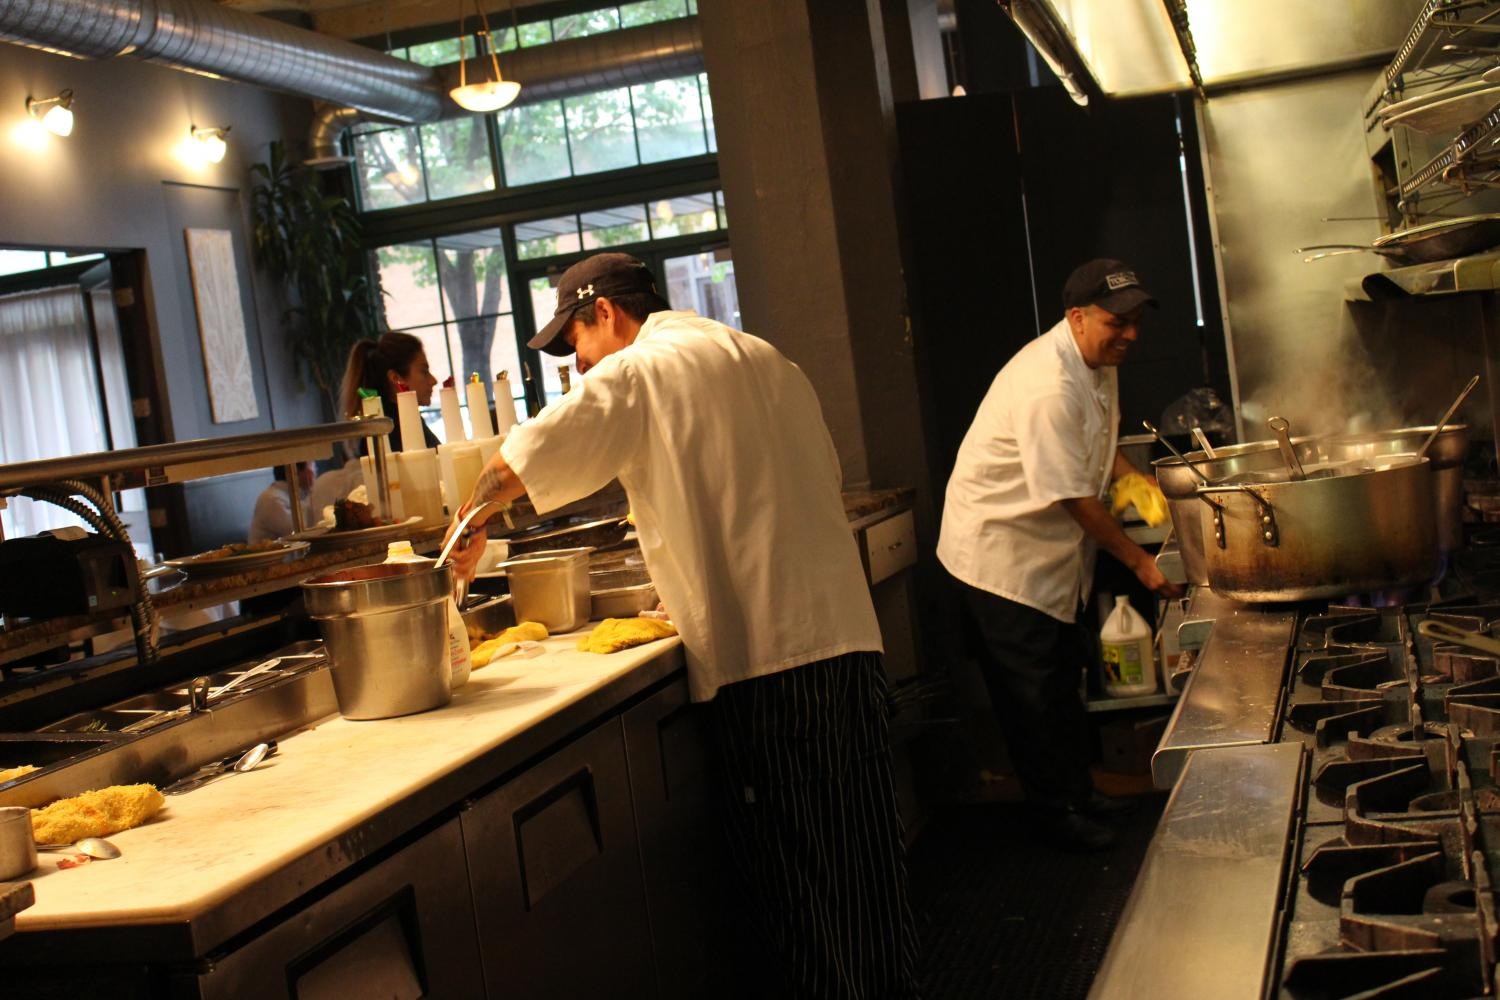 Cucina Toscana's chefs whip up the next order. 4/26/17. Photography by Kira Rhay.